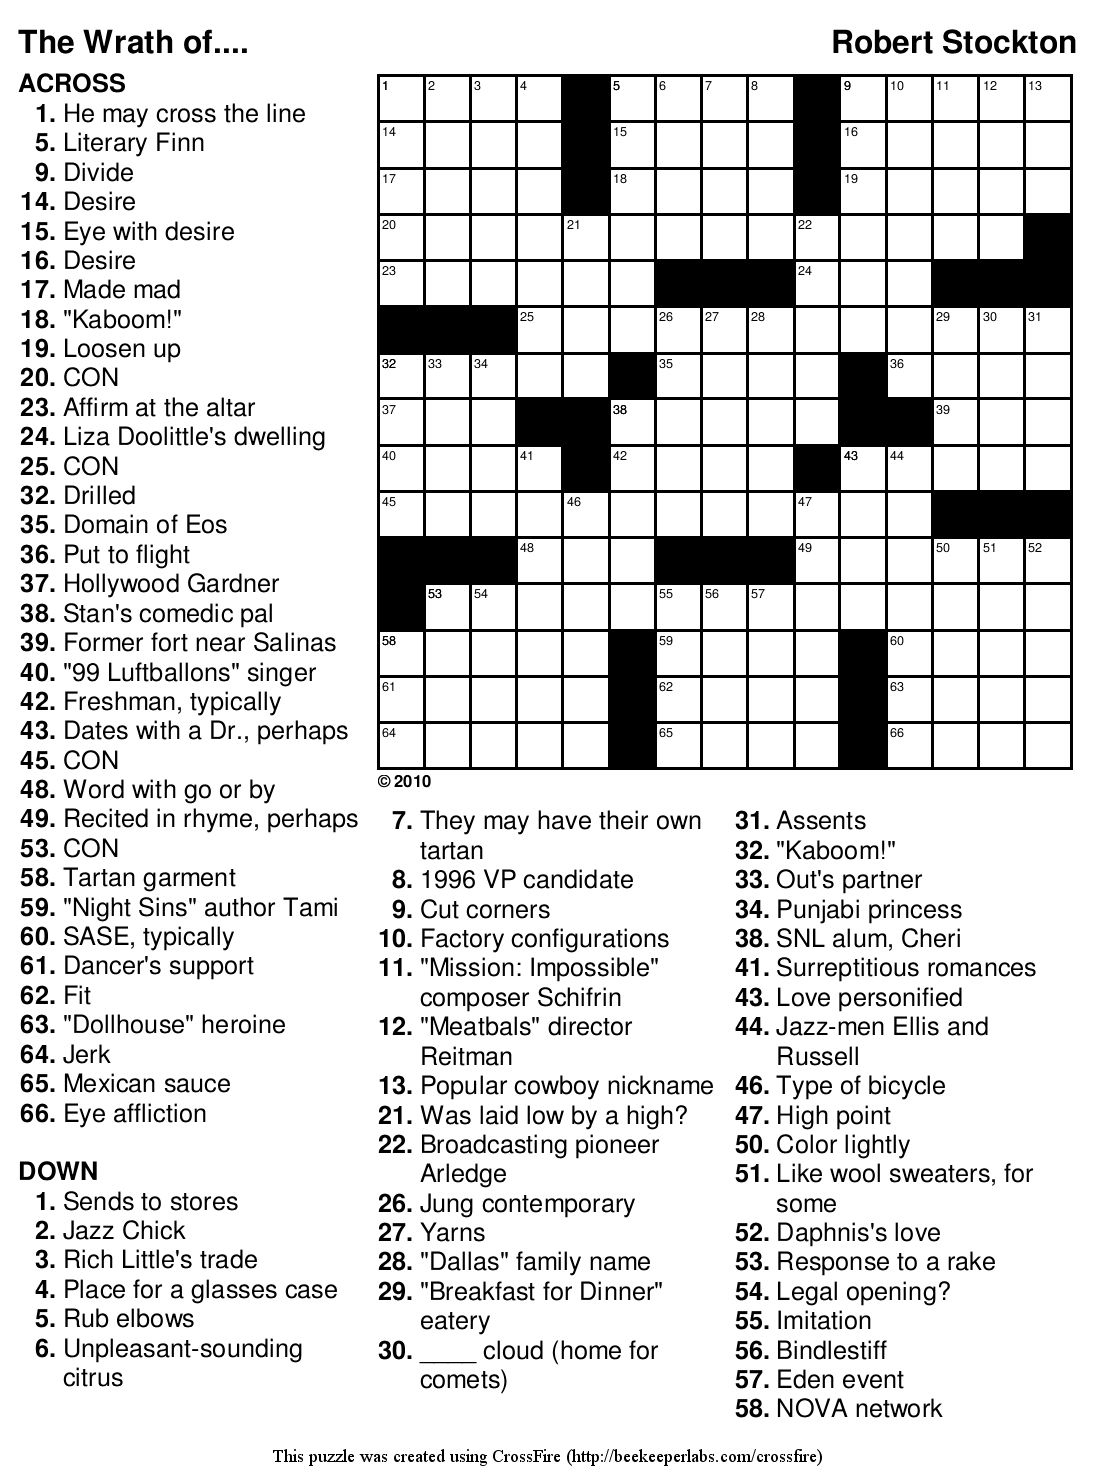 Marvelous Crossword Puzzles Easy Printable Free Org | Chas's Board - Create Free Online Crossword Puzzles Printable